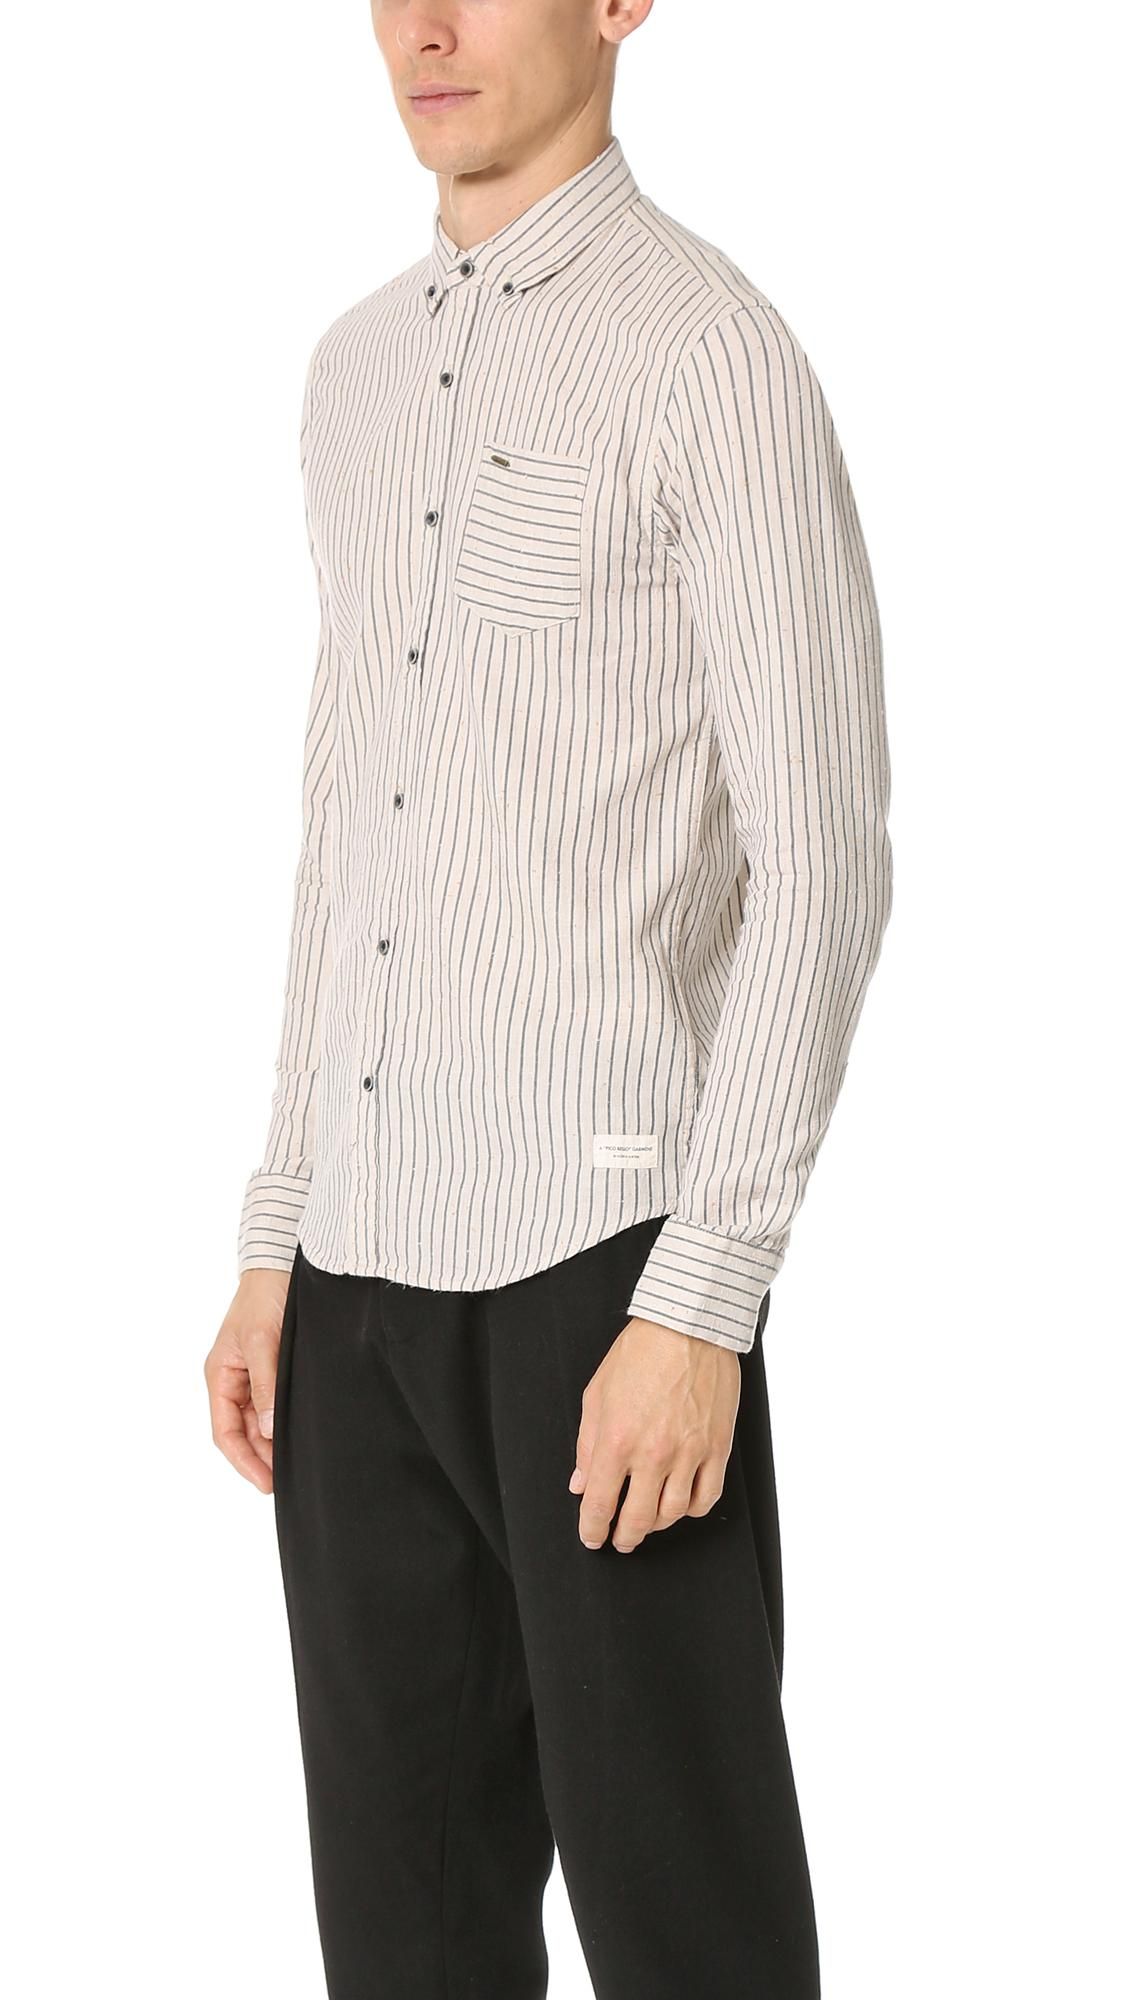 Lyst scotch soda brushed cotton button down shirt in for Cotton button down shirts men